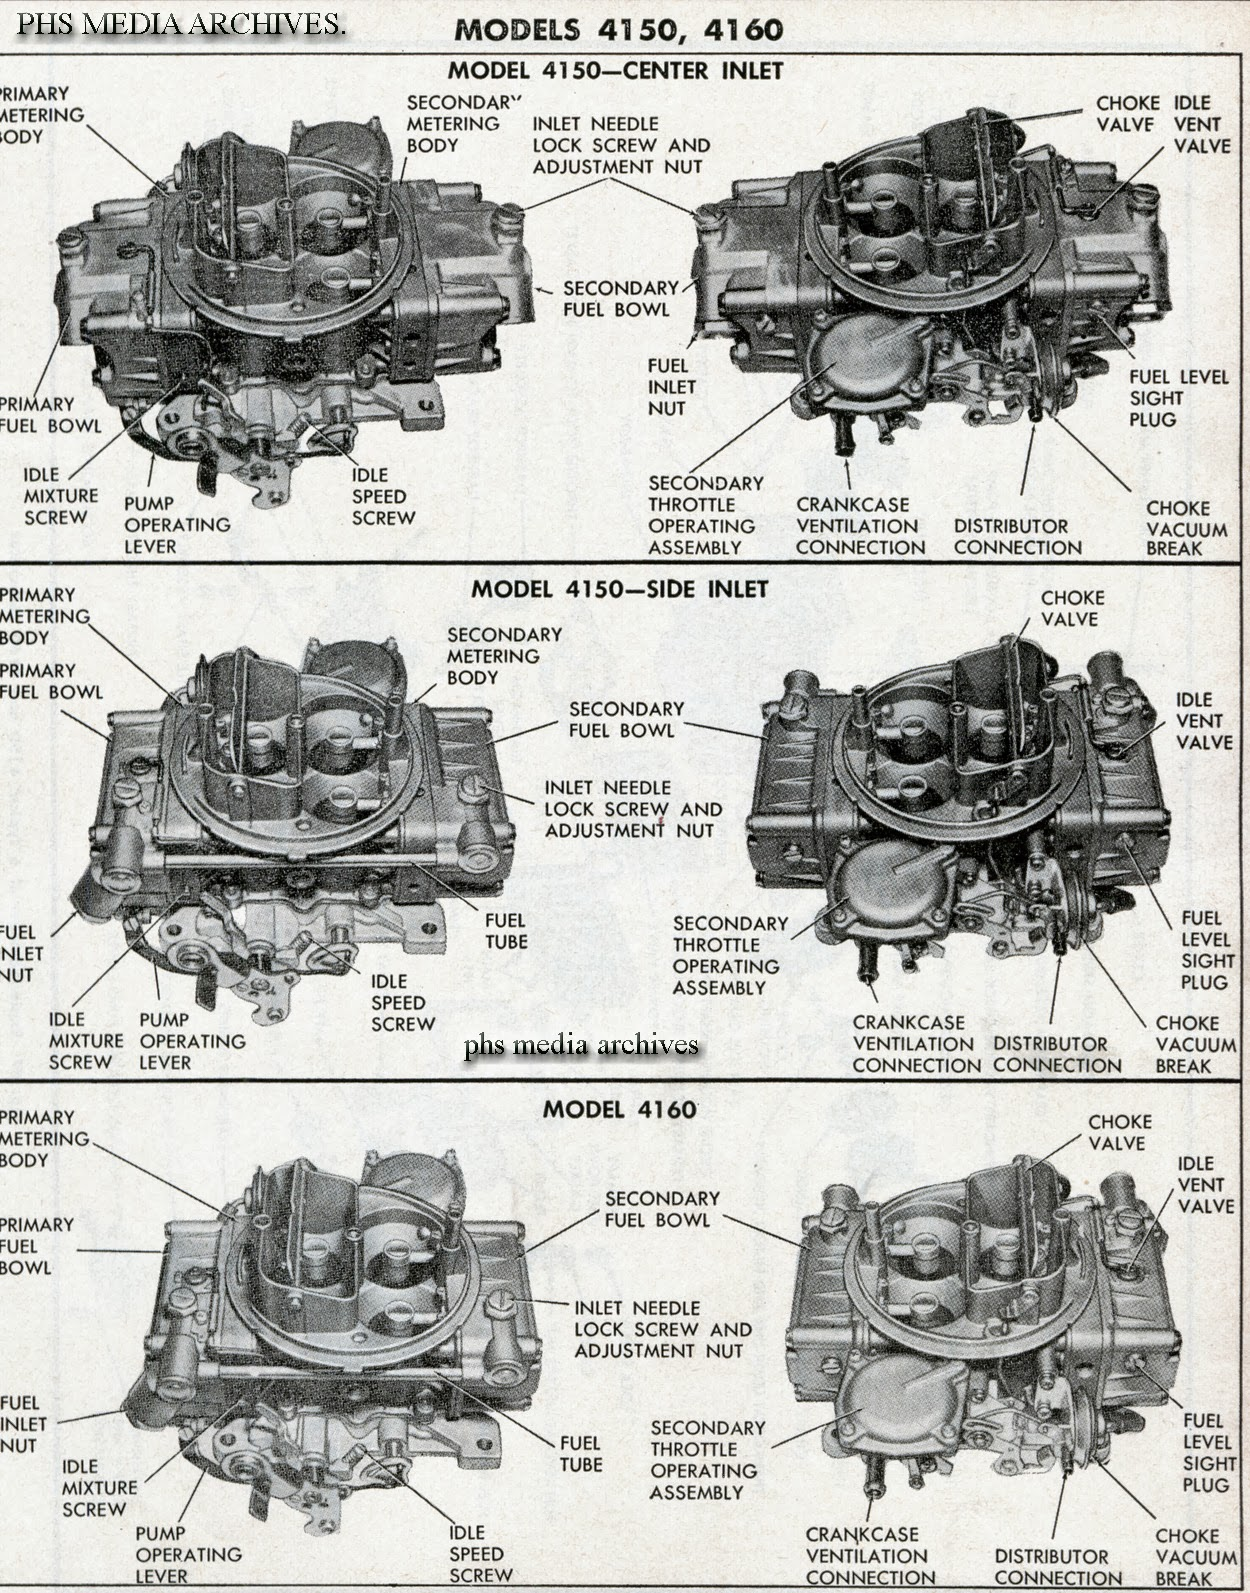 holley carb diagram best wiring librarytech files holley 4150 4160 id carburetor guide phscollectorcarworldholley 4150 diagram [ 1250 x 1593 Pixel ]